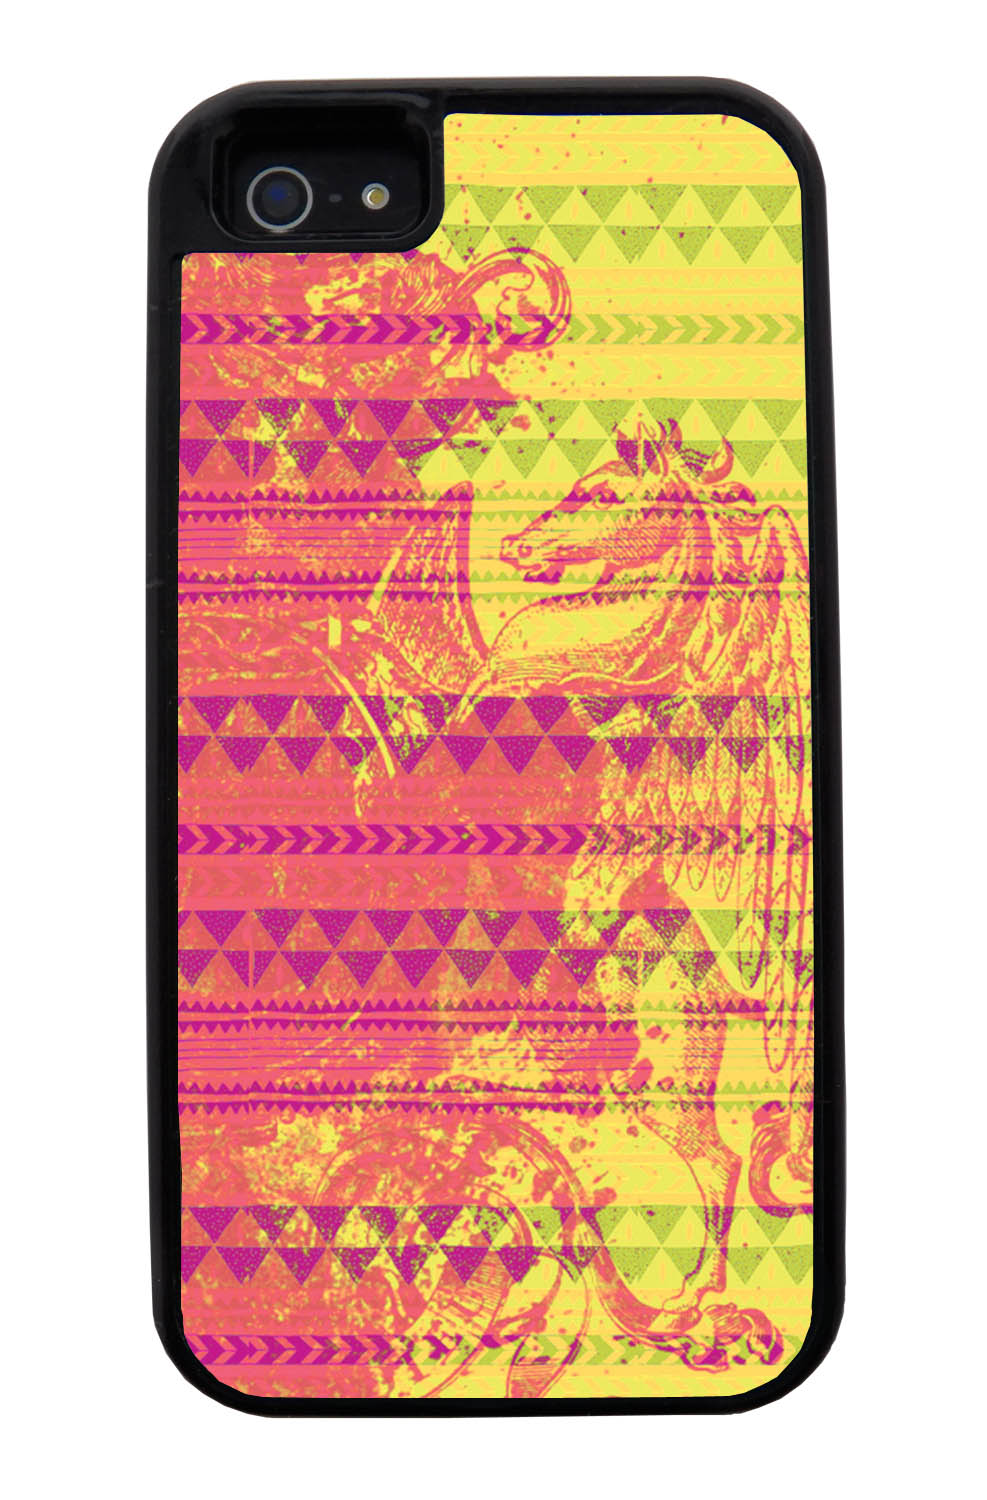 Apple iPhone 5 / 5S Aztec Case - Pink Paint with Hot Pink, Yellow, and Green - Paint Splatter Overlay - Black Tough Hybrid Case